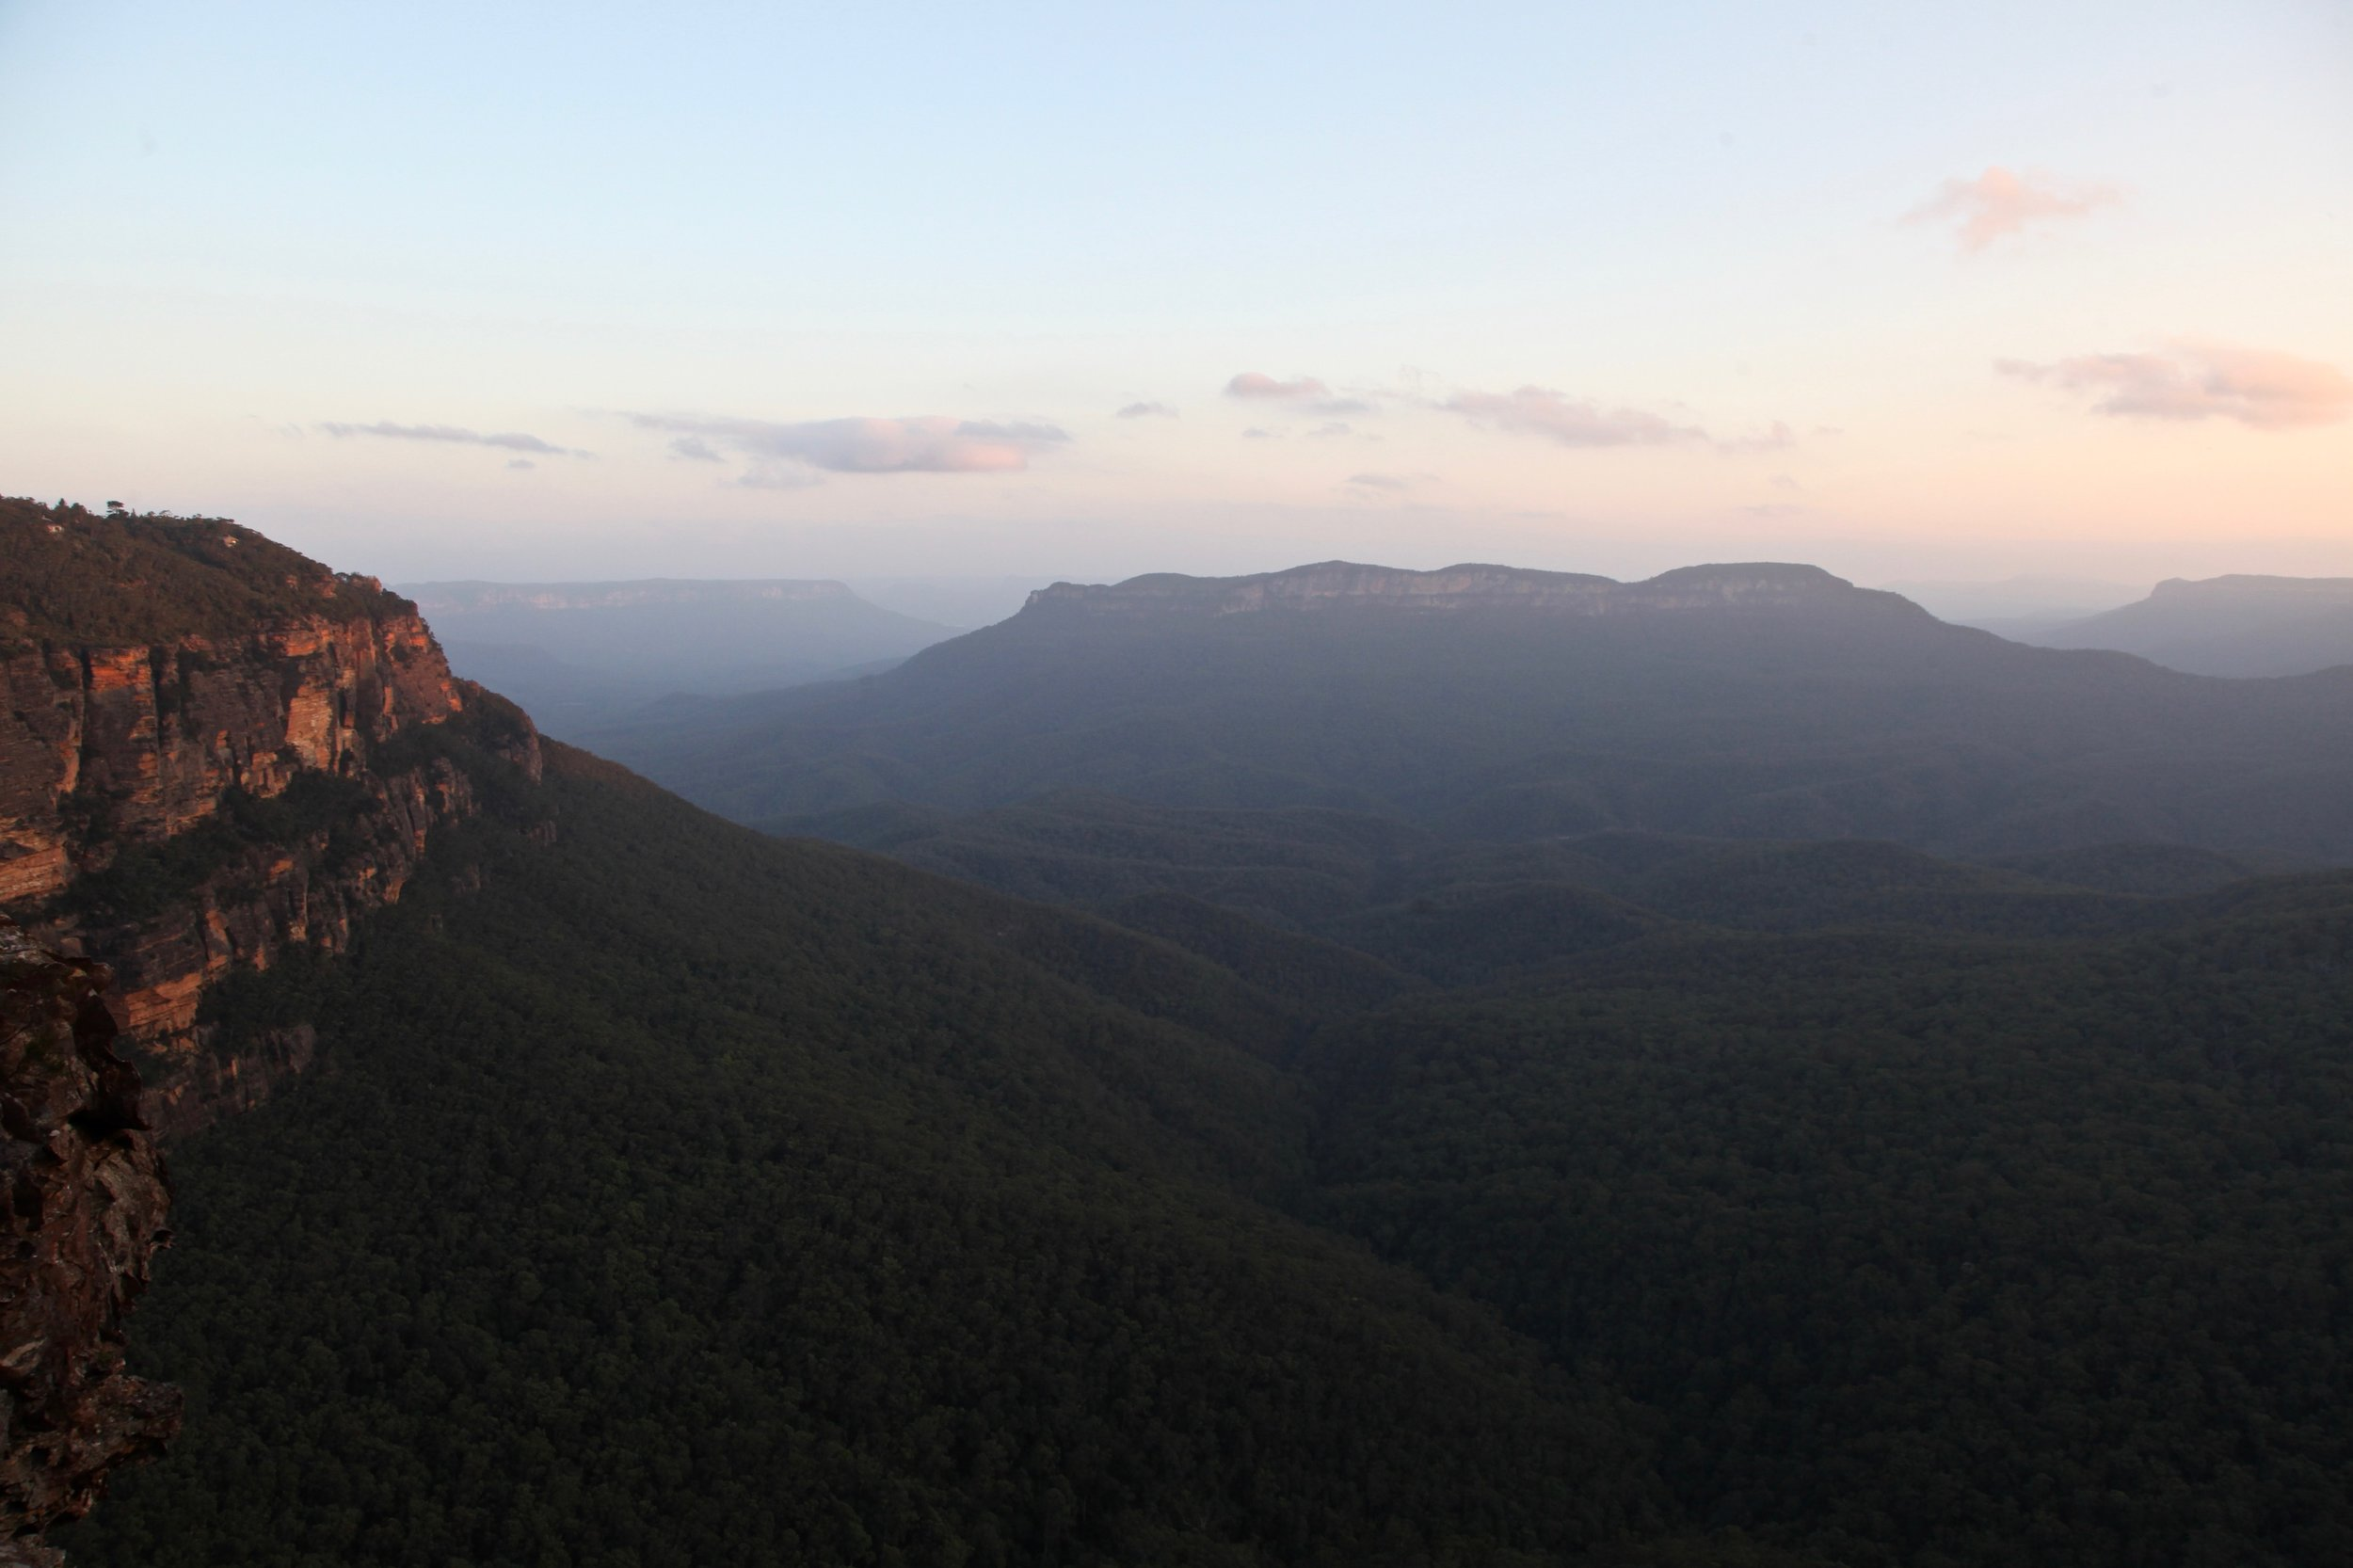 The view from Gordon Falls lookout at sunset.